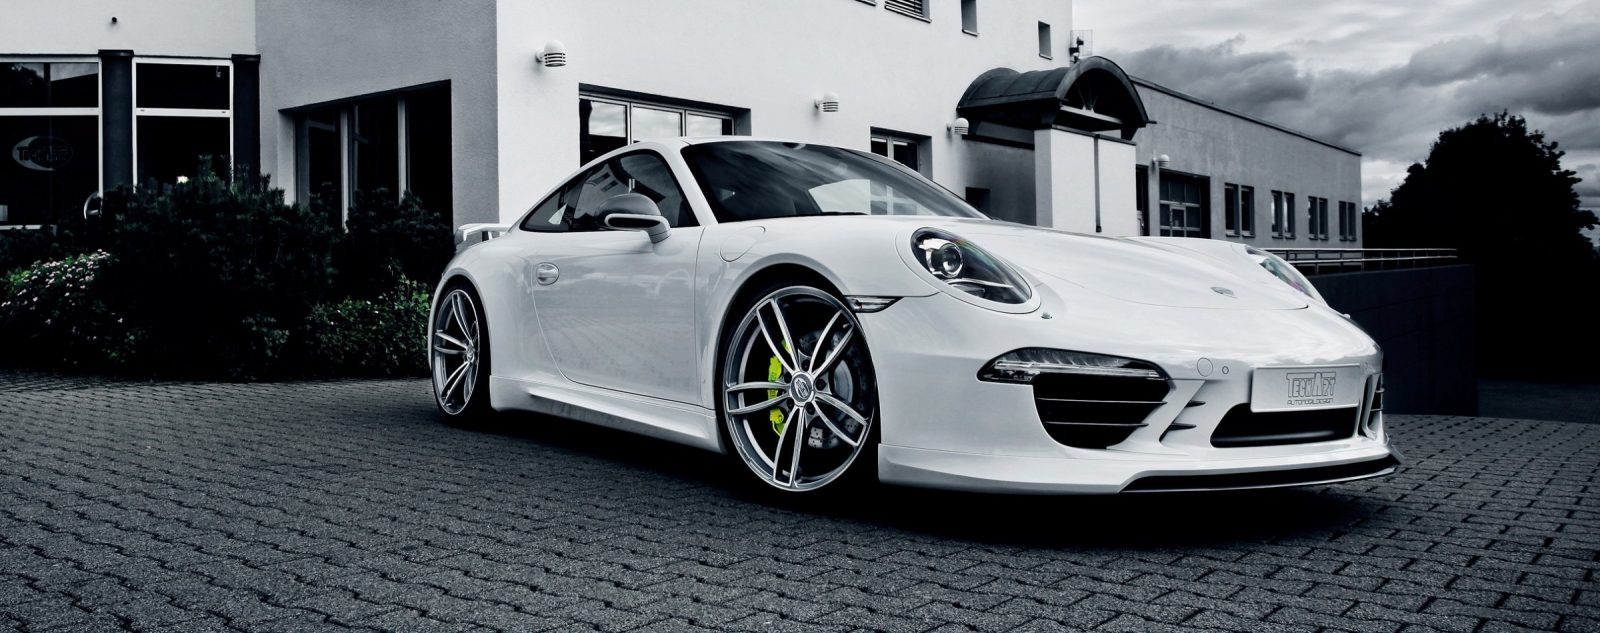 TECHART_for_Porsche_911_Carrera_4S_with_Formula_IV_exterior2